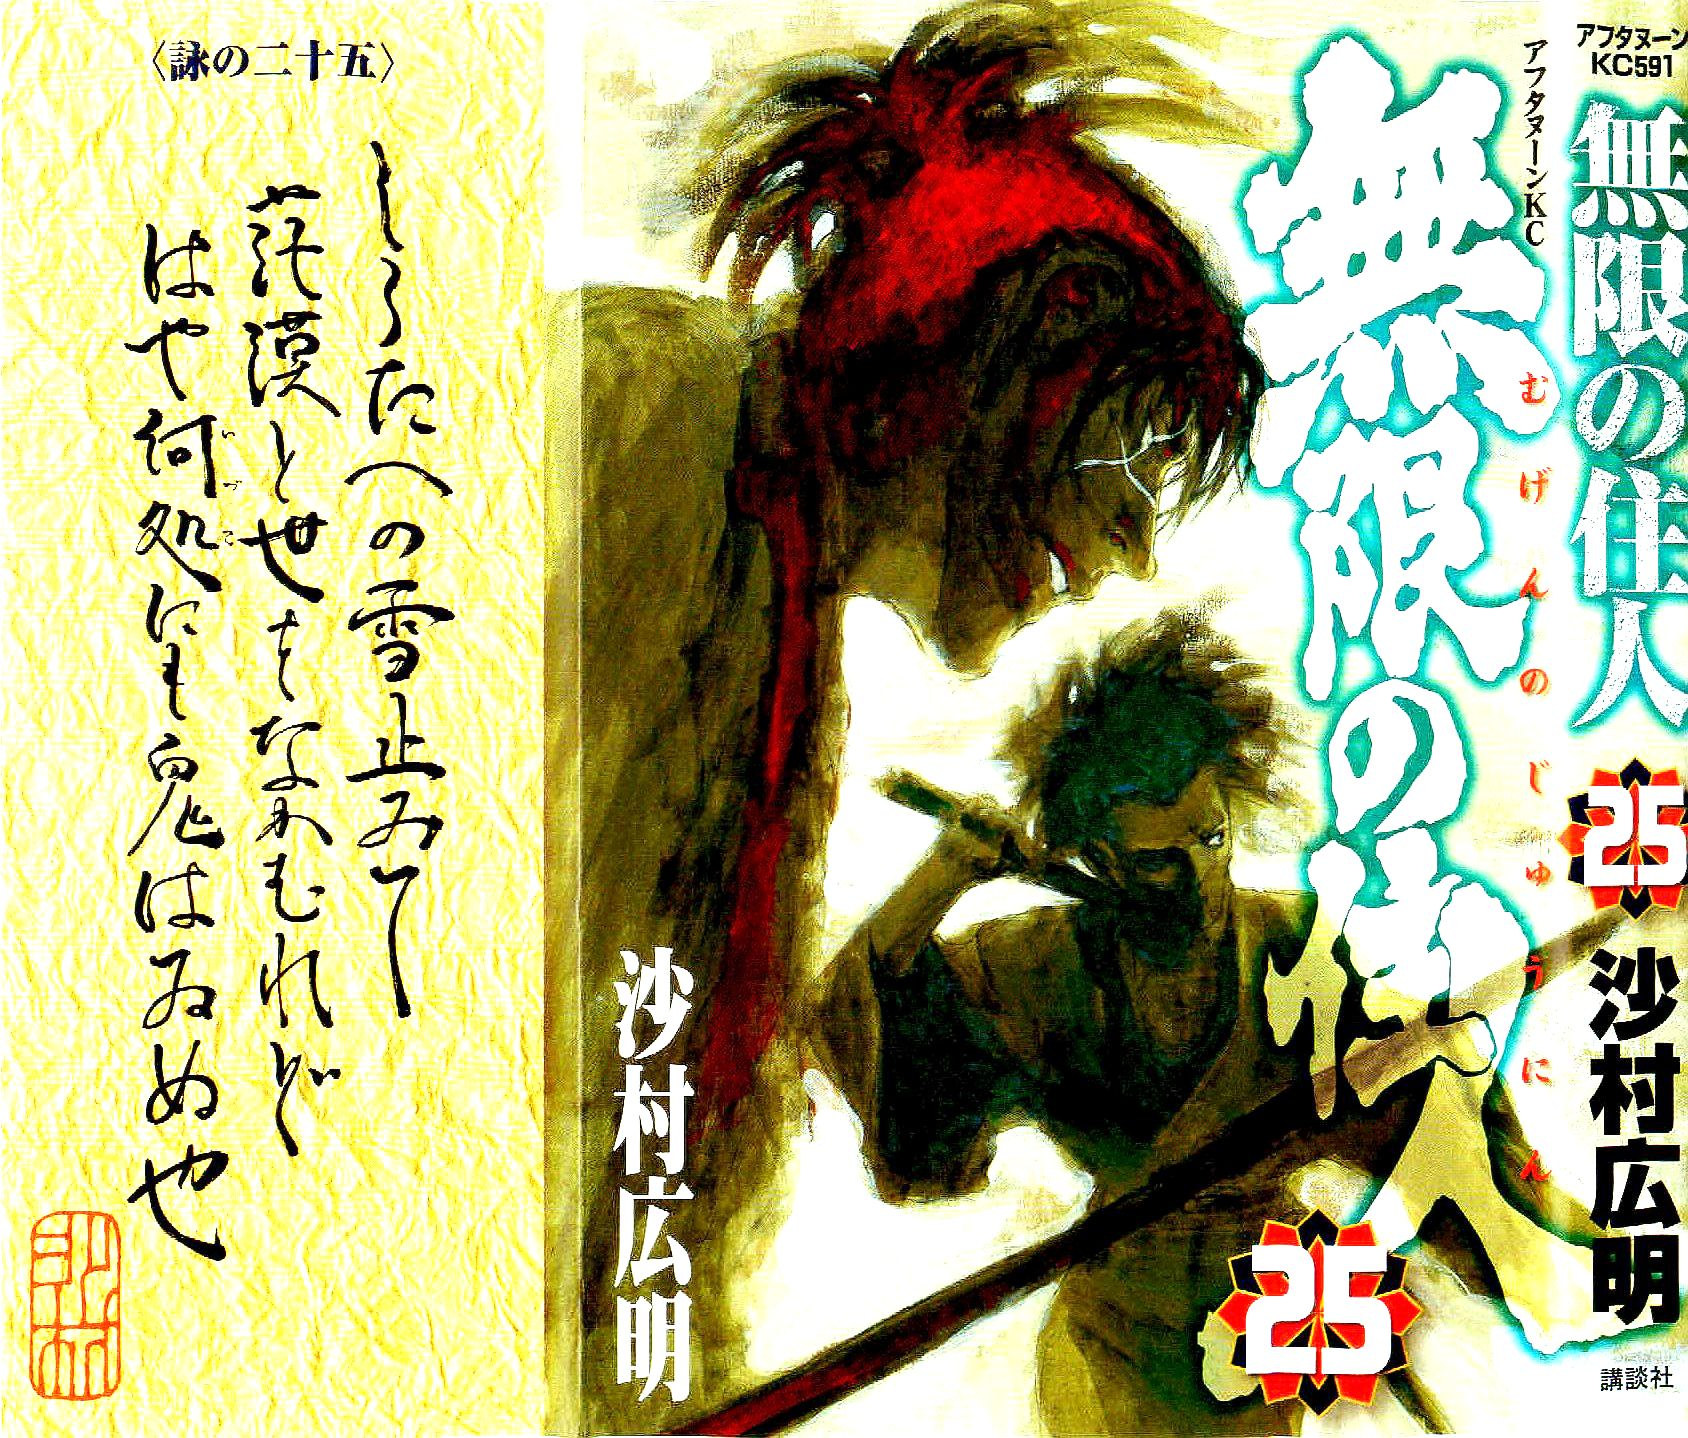 Blade of the Immortal 163 Page 1